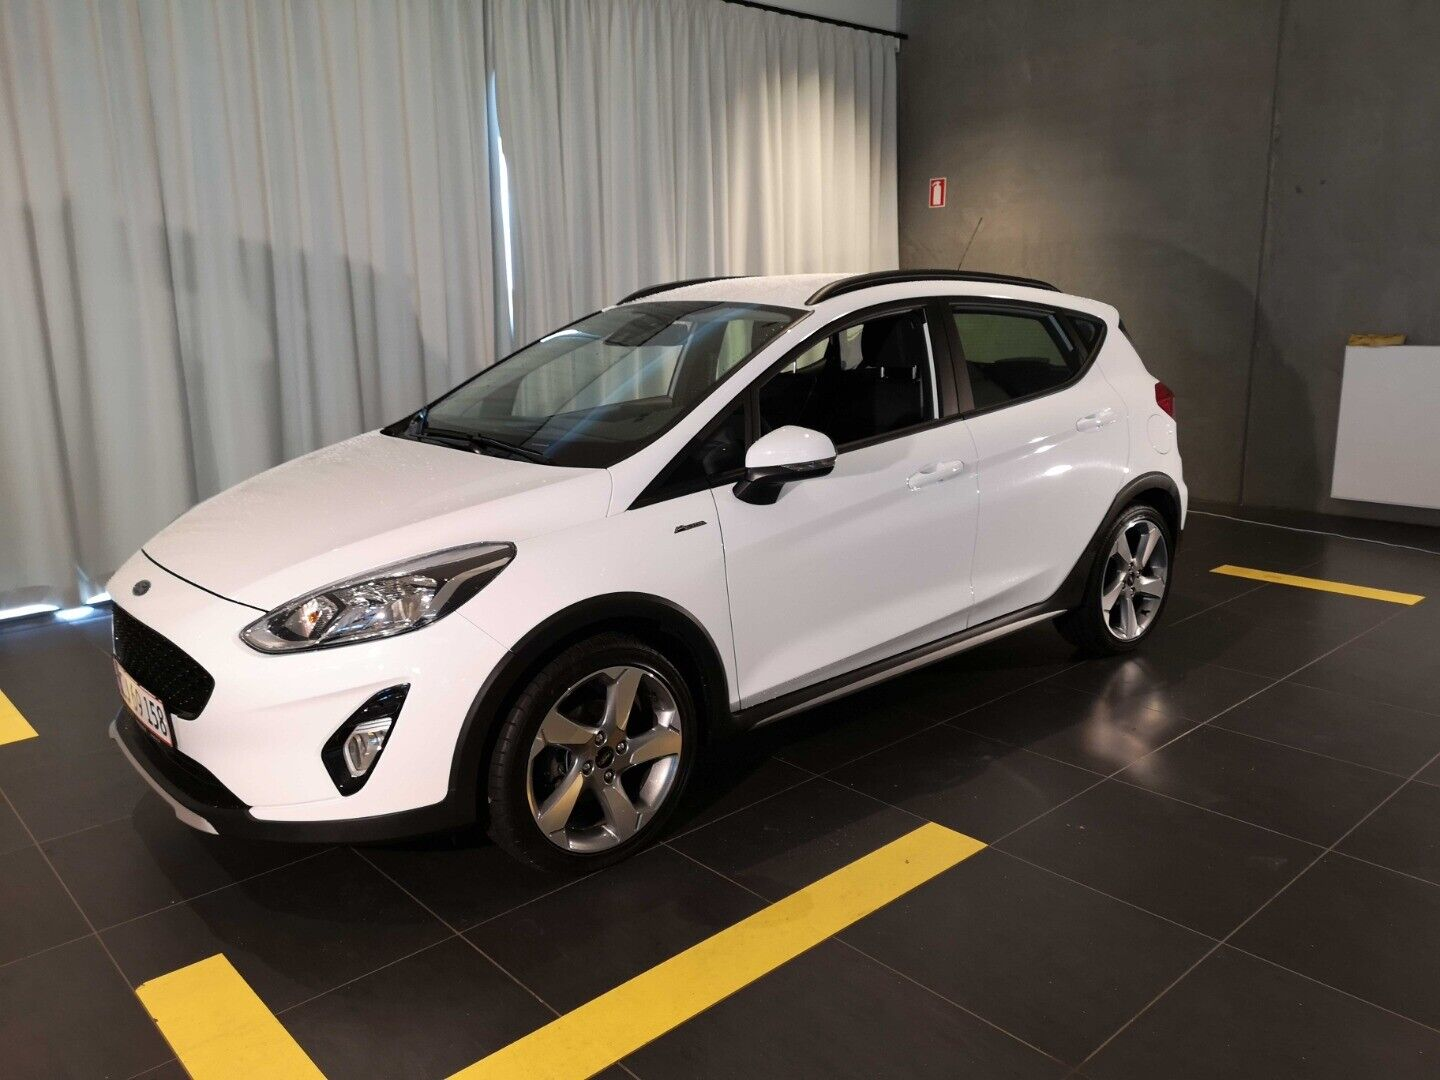 Ford Fiesta 1,0 SCTi 100 Active I